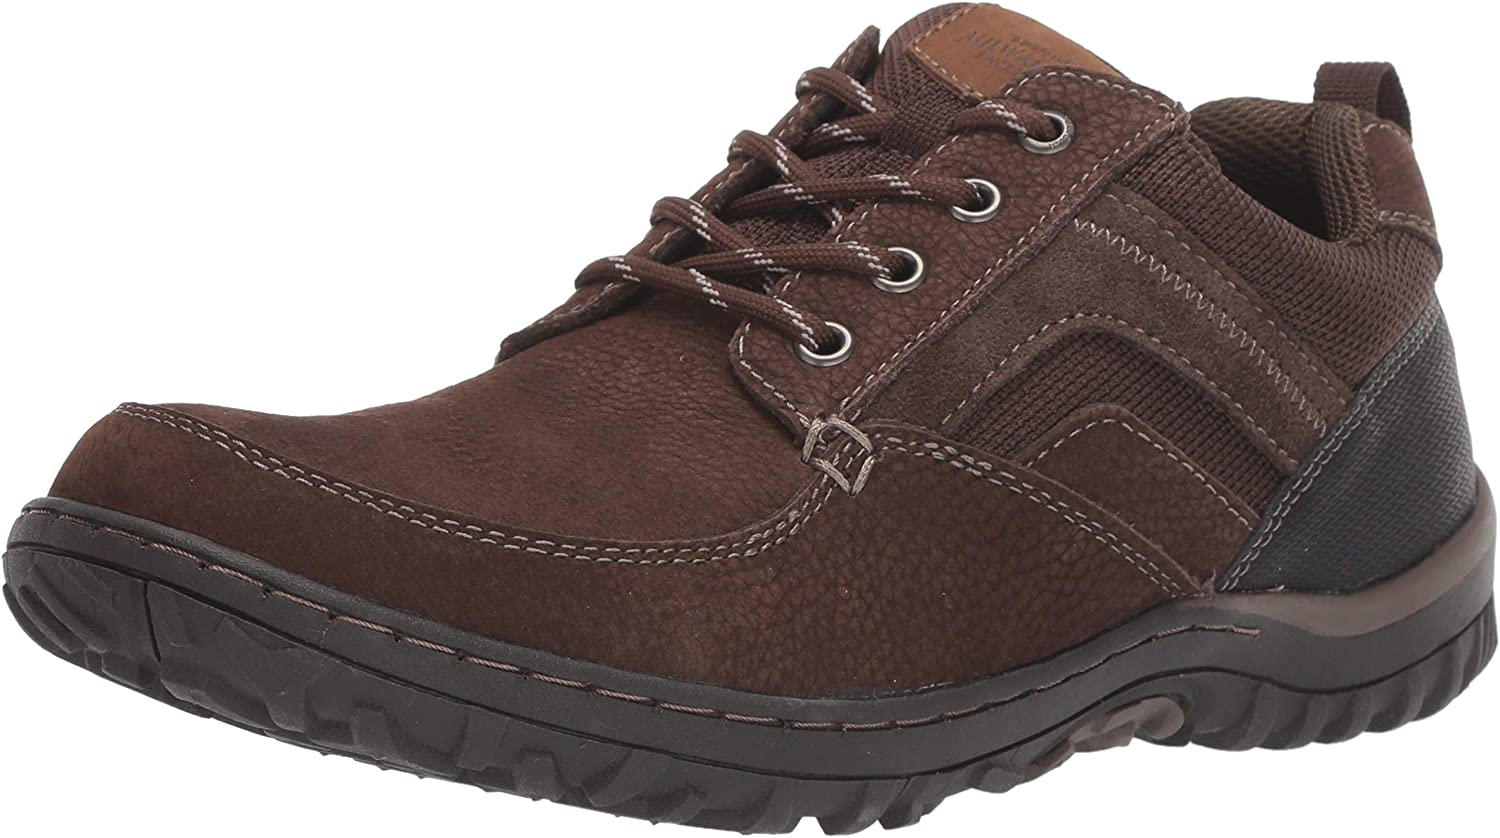 Nunn Bush Men's Quest Moccasin National uniform free shipping Toe Oxford Rugged Casual Lace Up Ranking TOP3